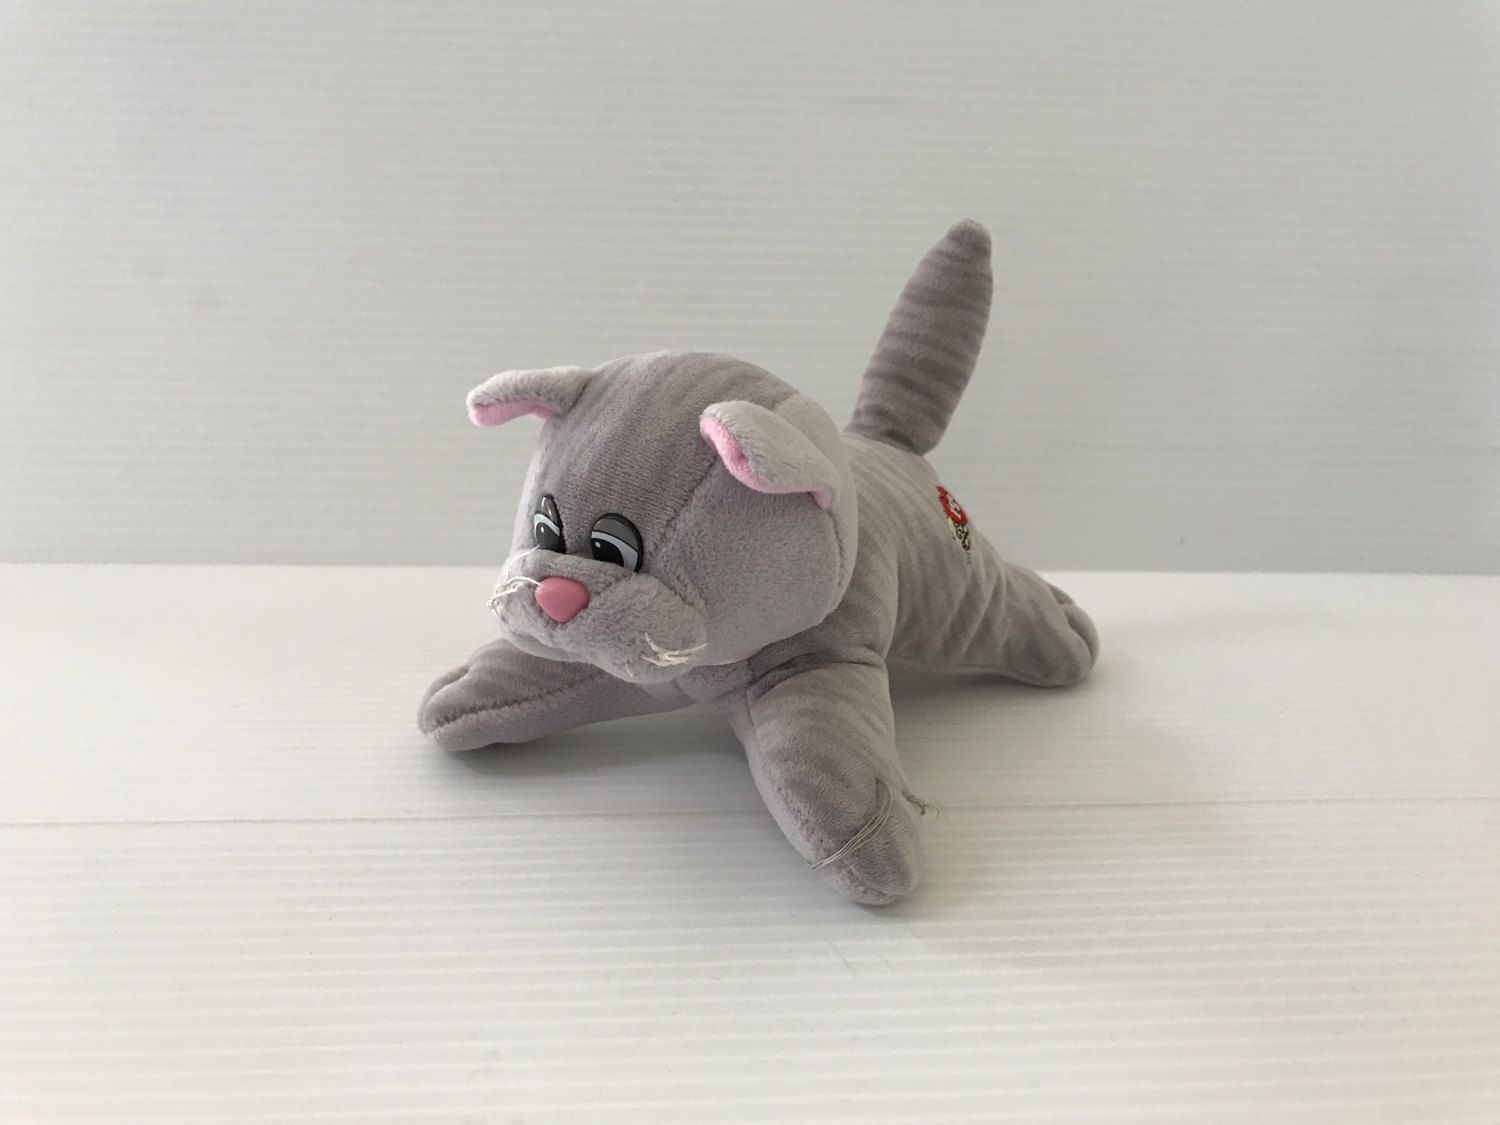 Pound Puppy Cat Vintage Pound Puppy Cat Grey Plush Cat Tabby Cat Small Pound Purries Cat Vintage Tonka Toy Pound Puppy Pound Puppies Tabby Cat Tonka Toys